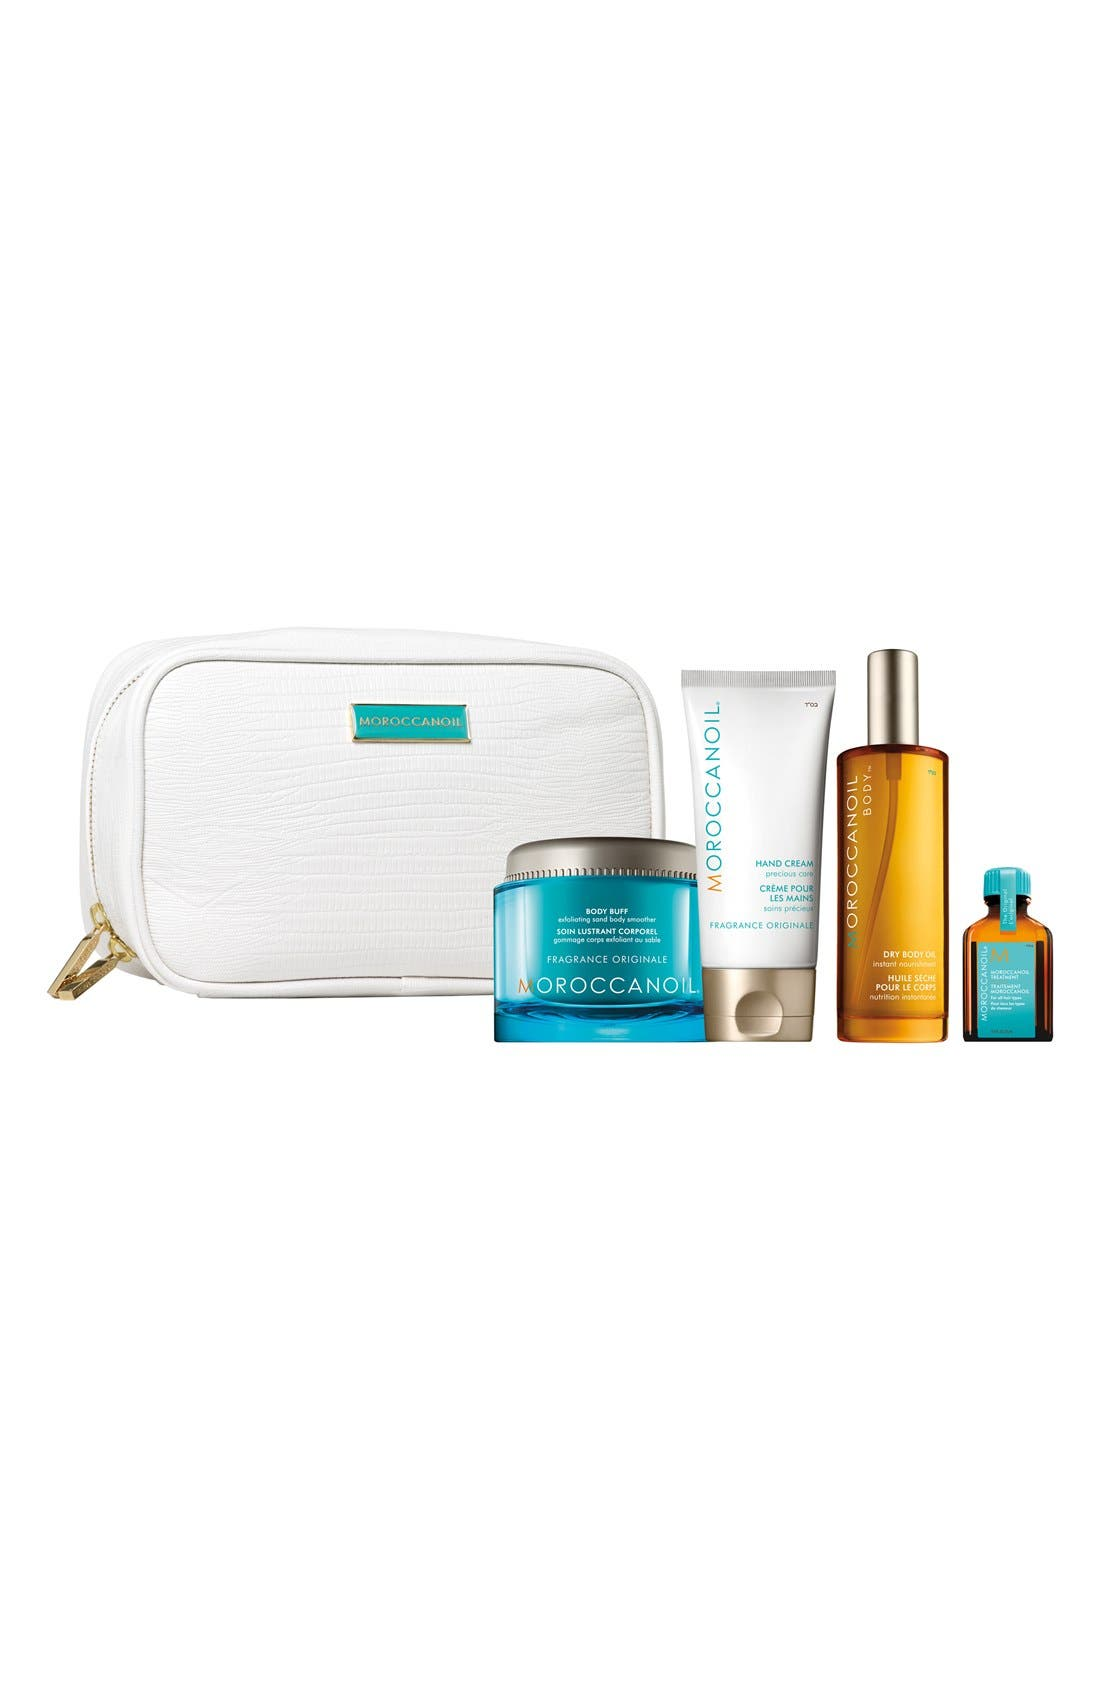 MOROCCANOIL® 'Body Collection' Set ($135 Value)